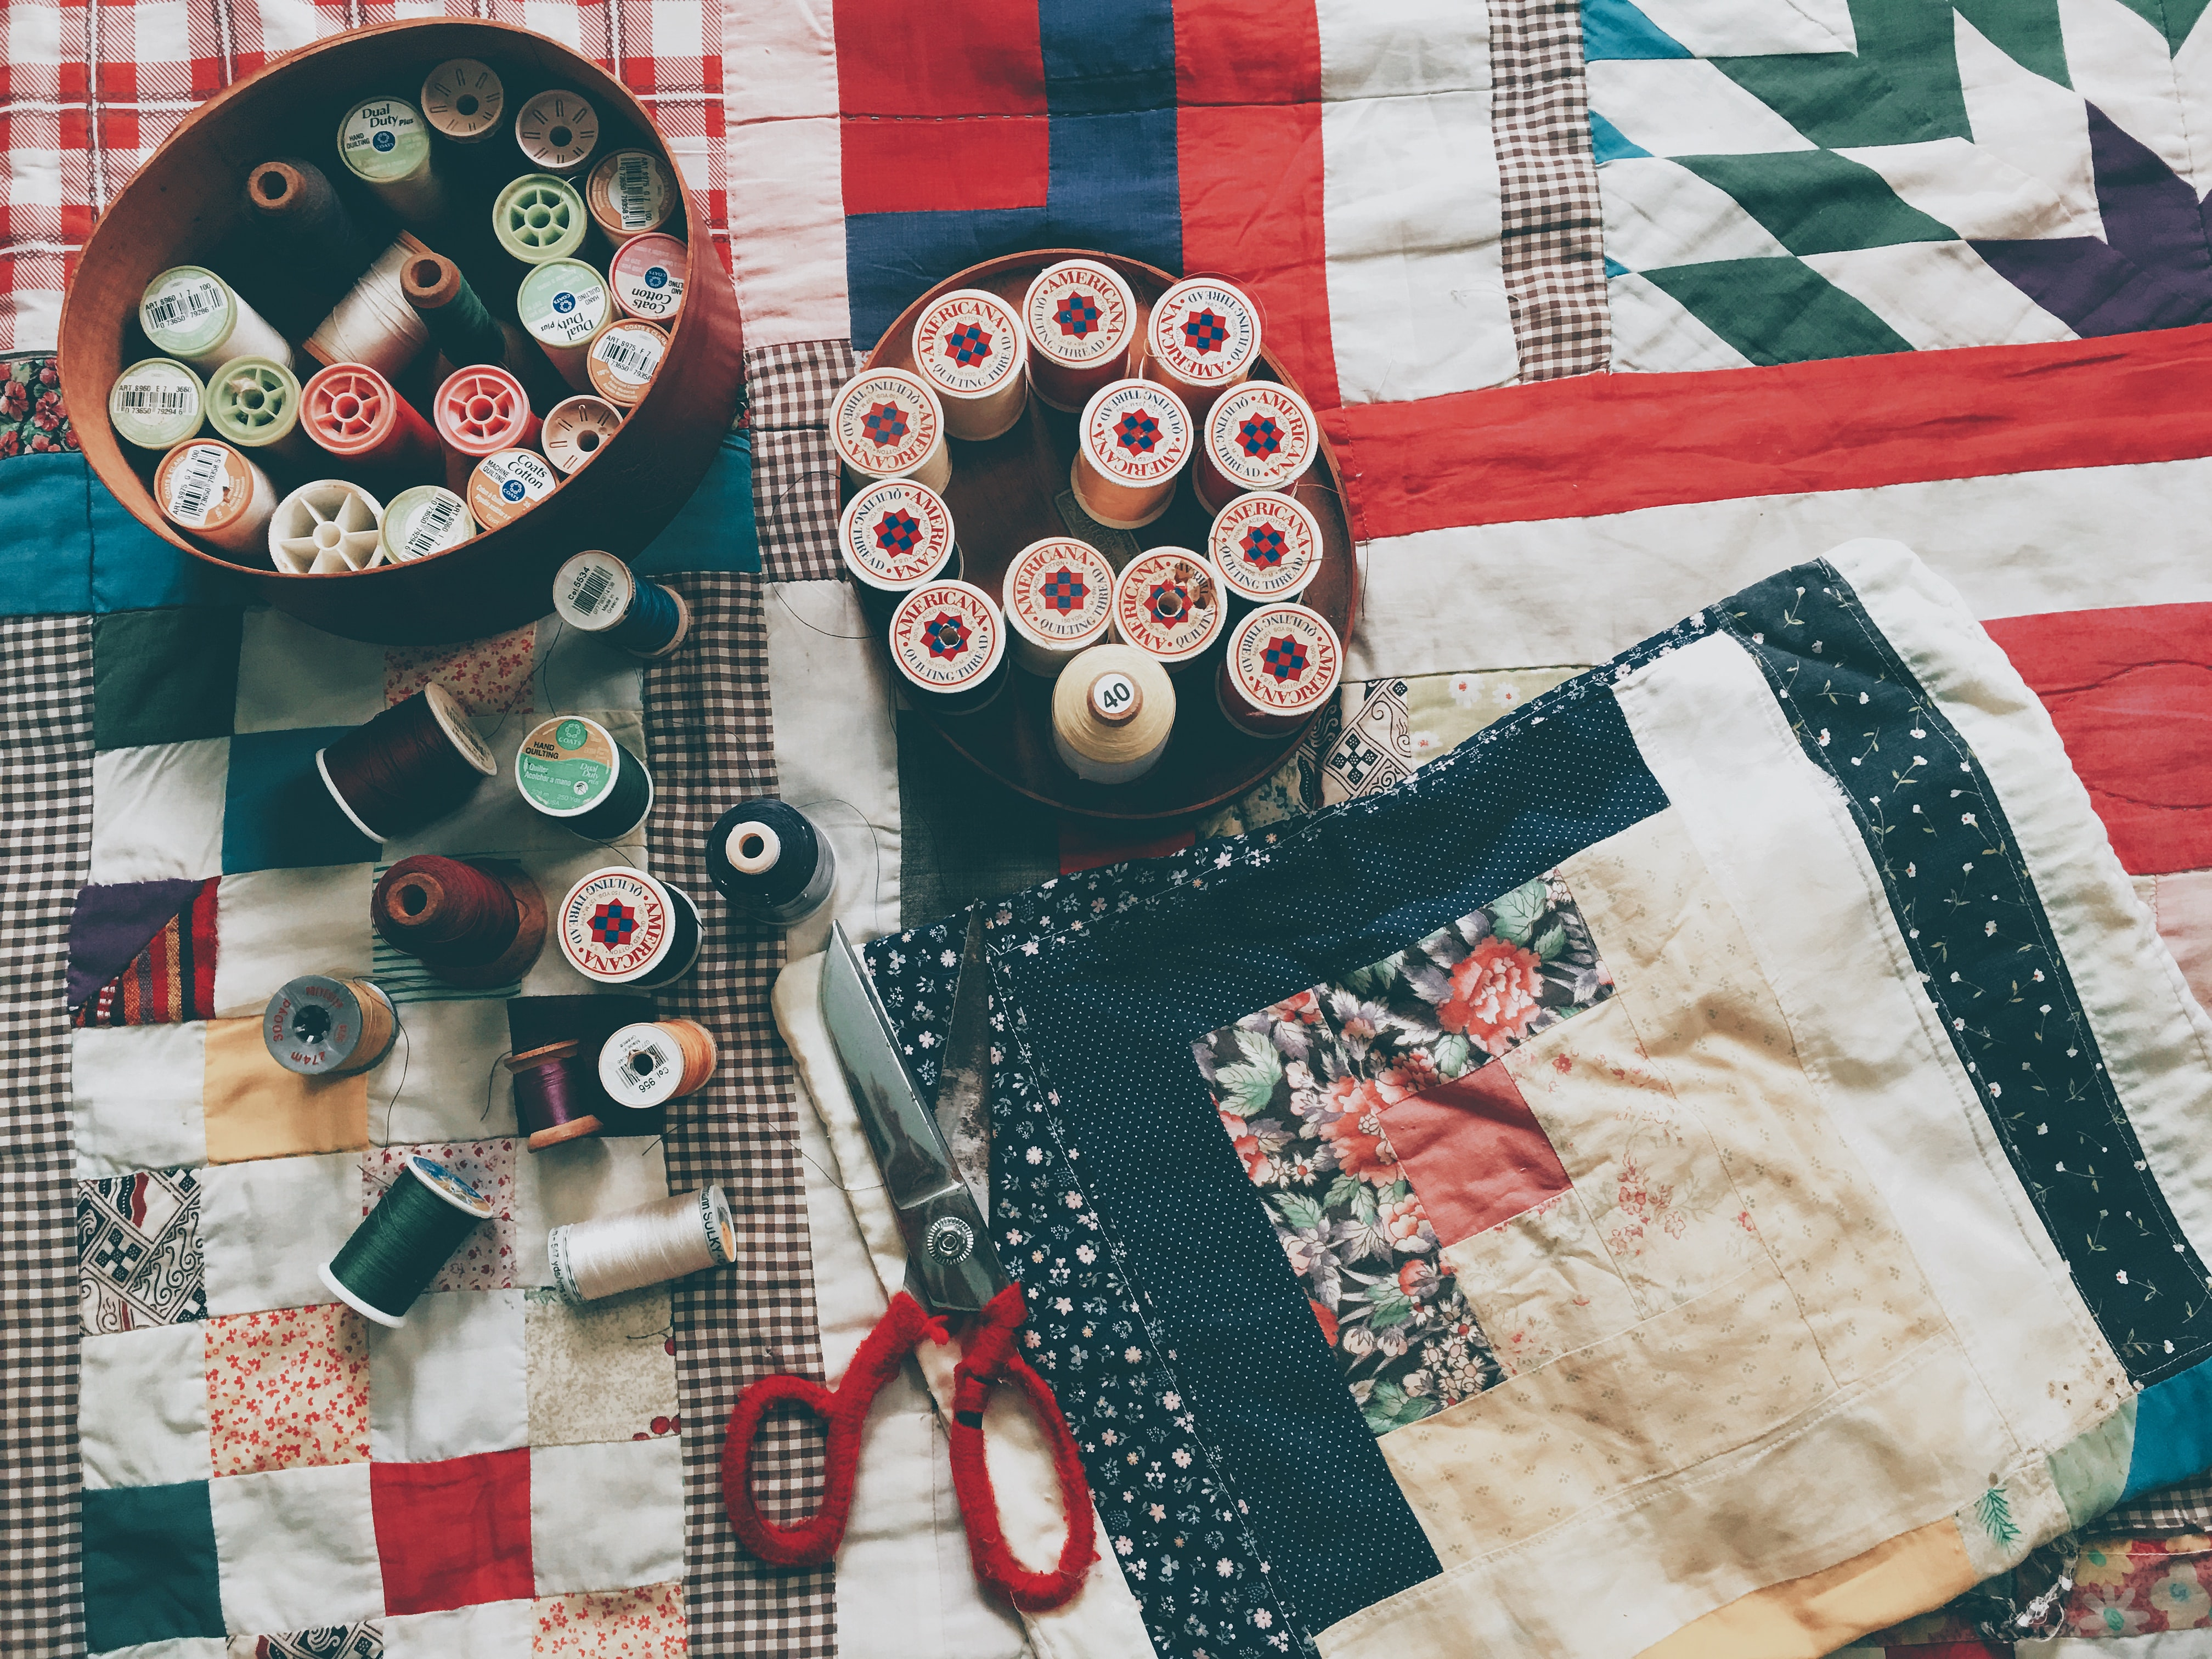 sewing silk and scissors